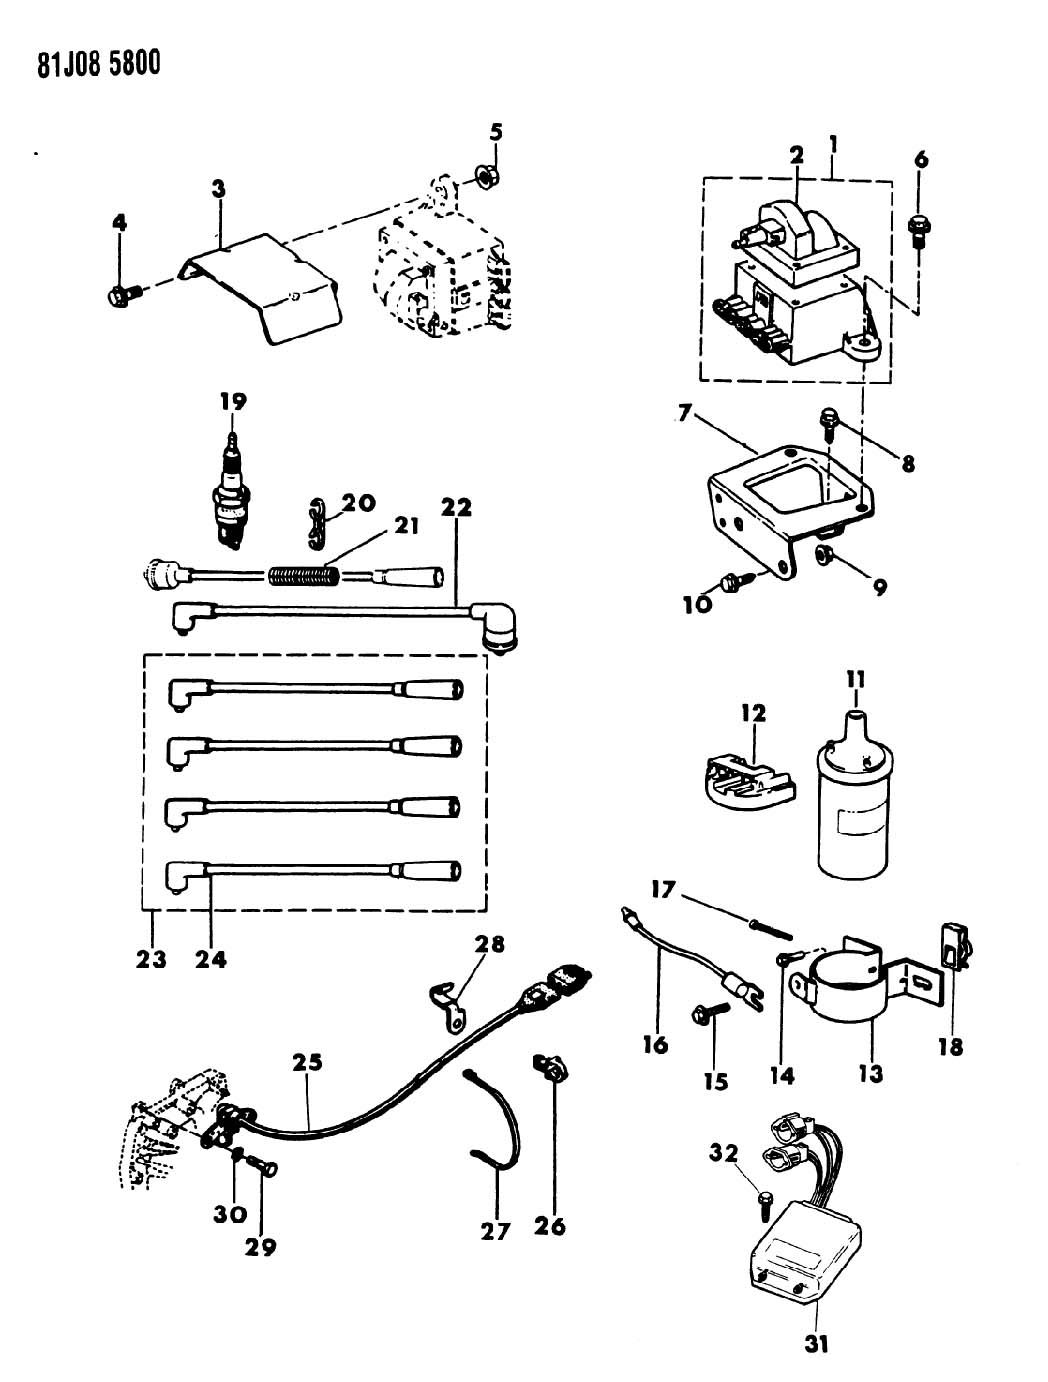 1989 jeep yj fuse box diagram  jeep  auto wiring diagram